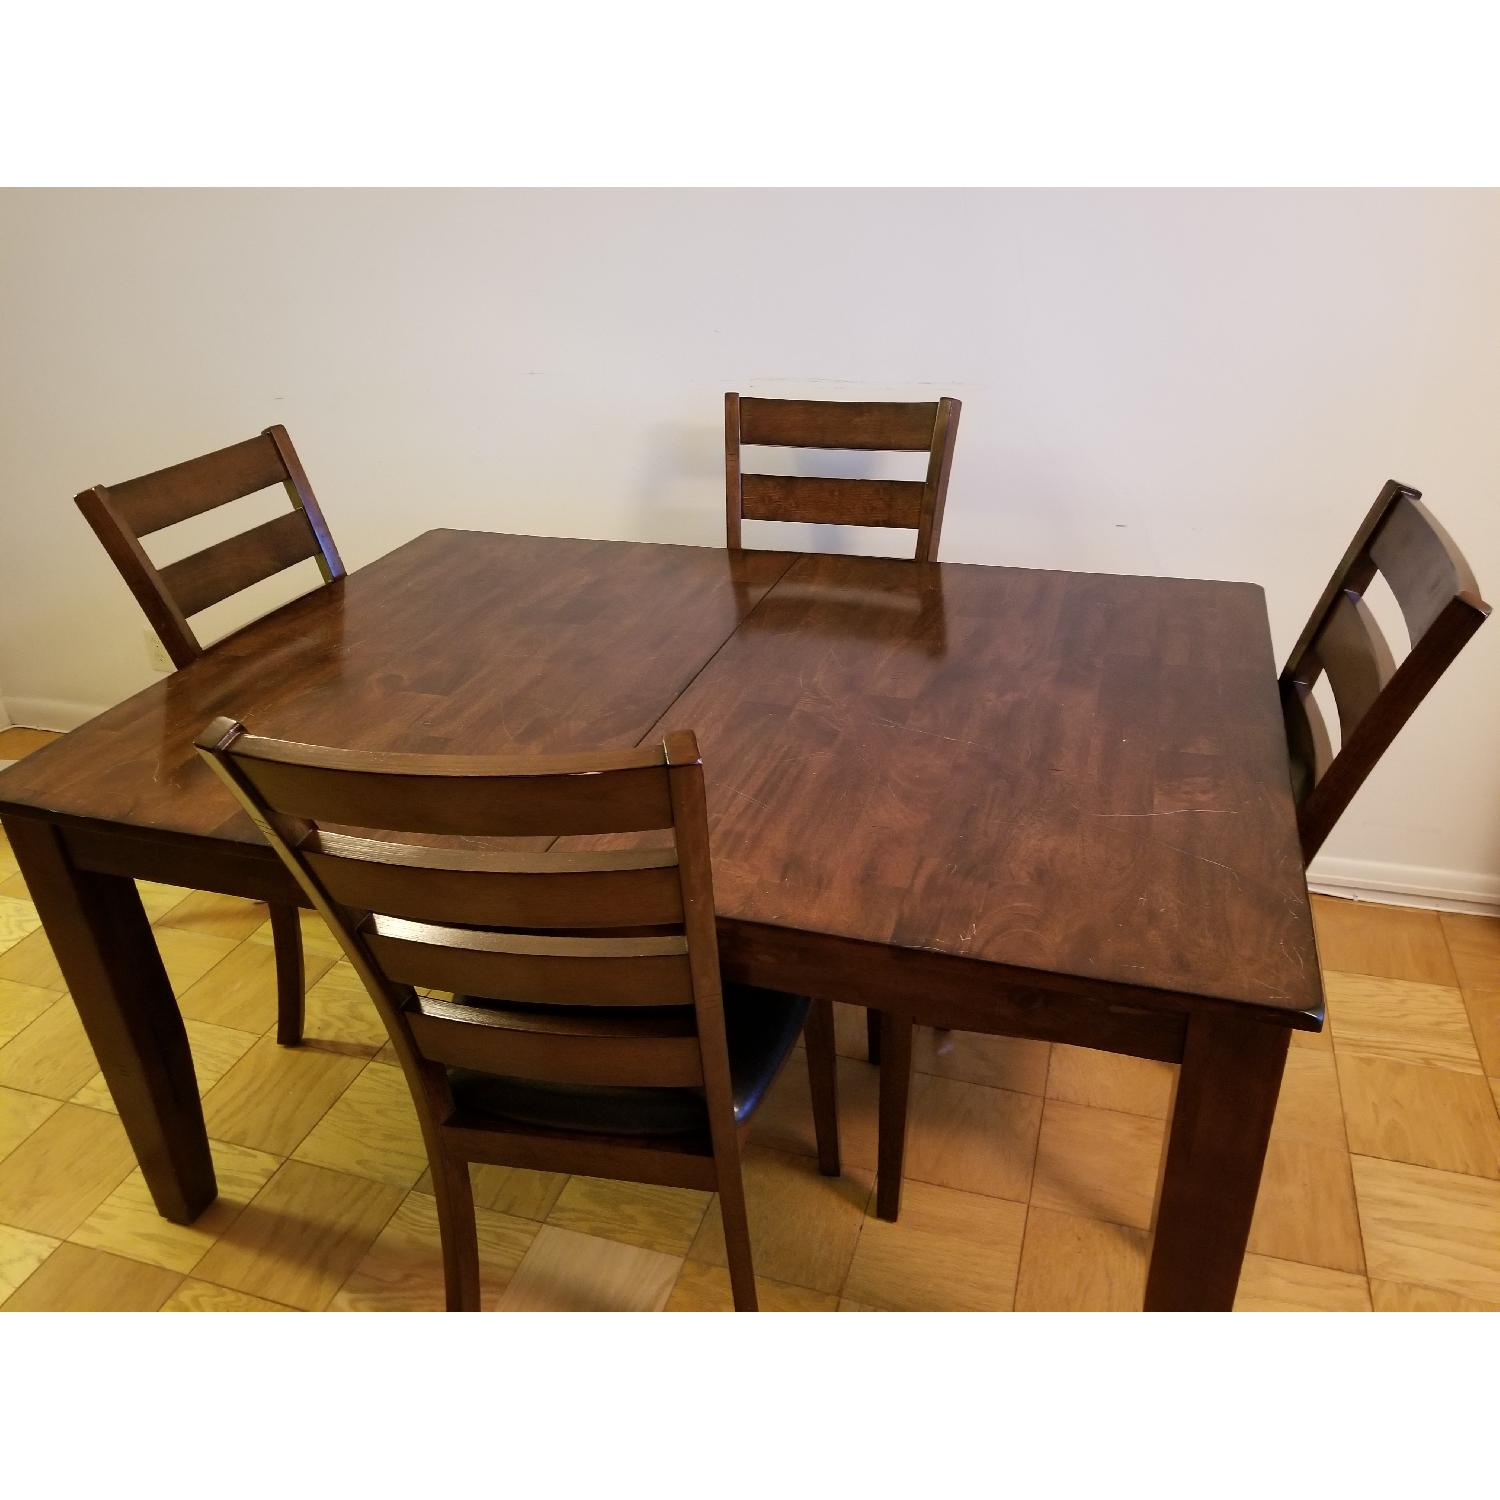 Raymour & Flanigan Kona 5-Piece Dining Set-0